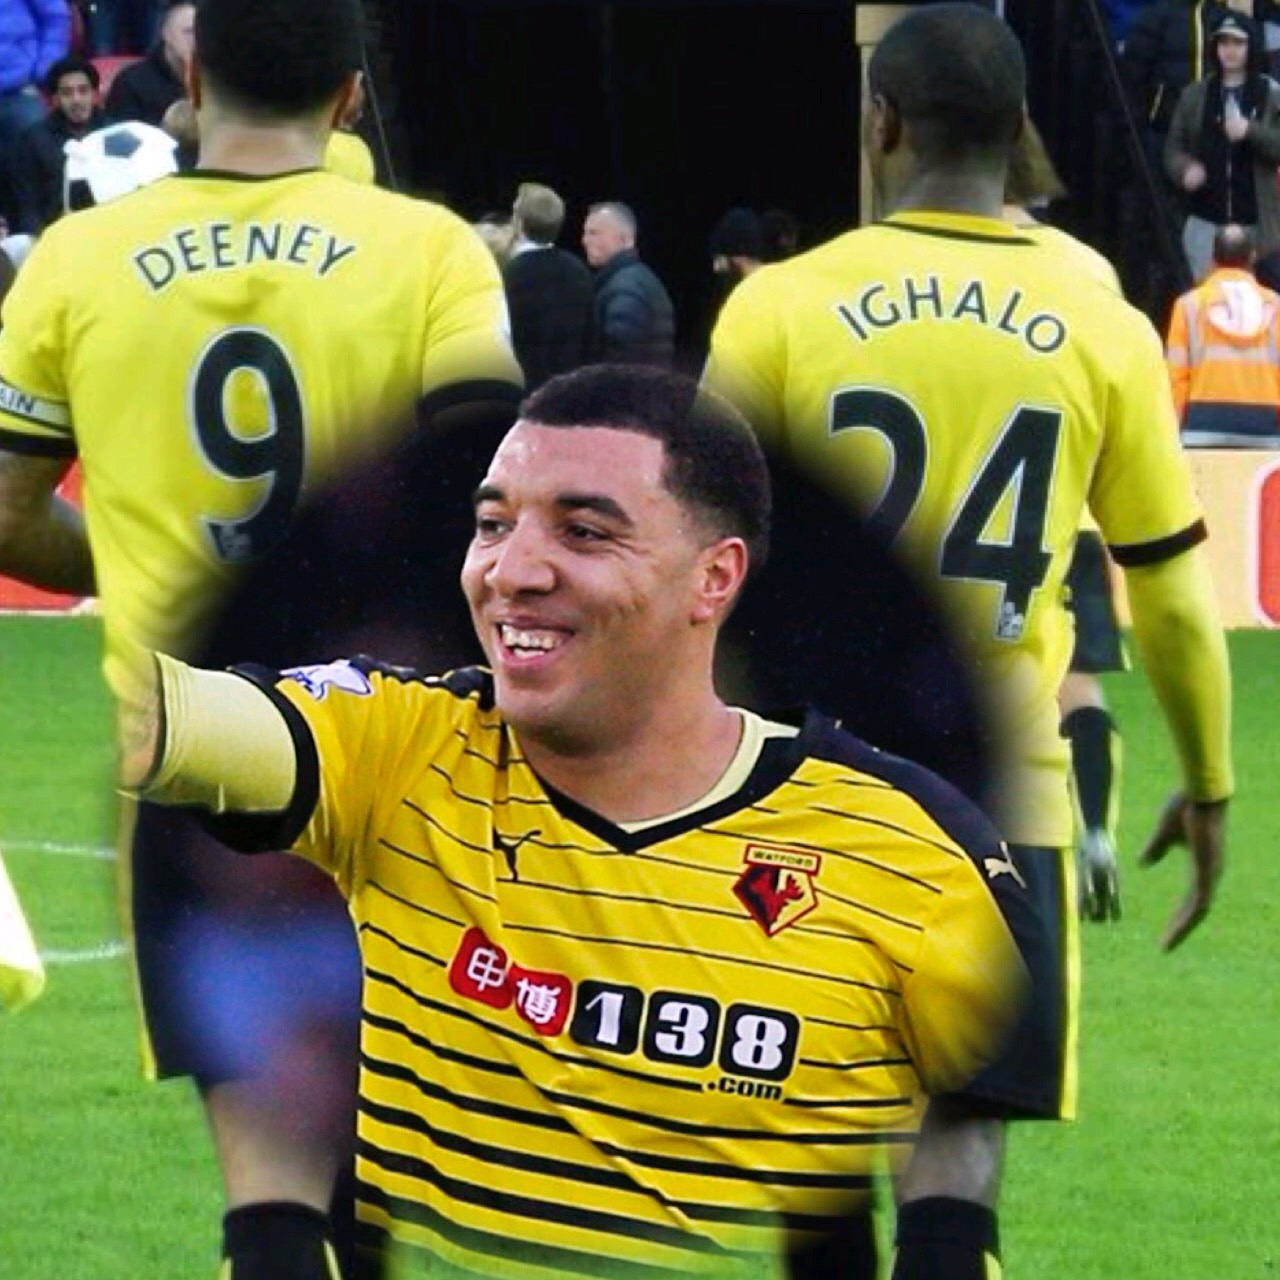 Ighalo Strike Partner, Deeney Signs New 5-Year Watford Deal